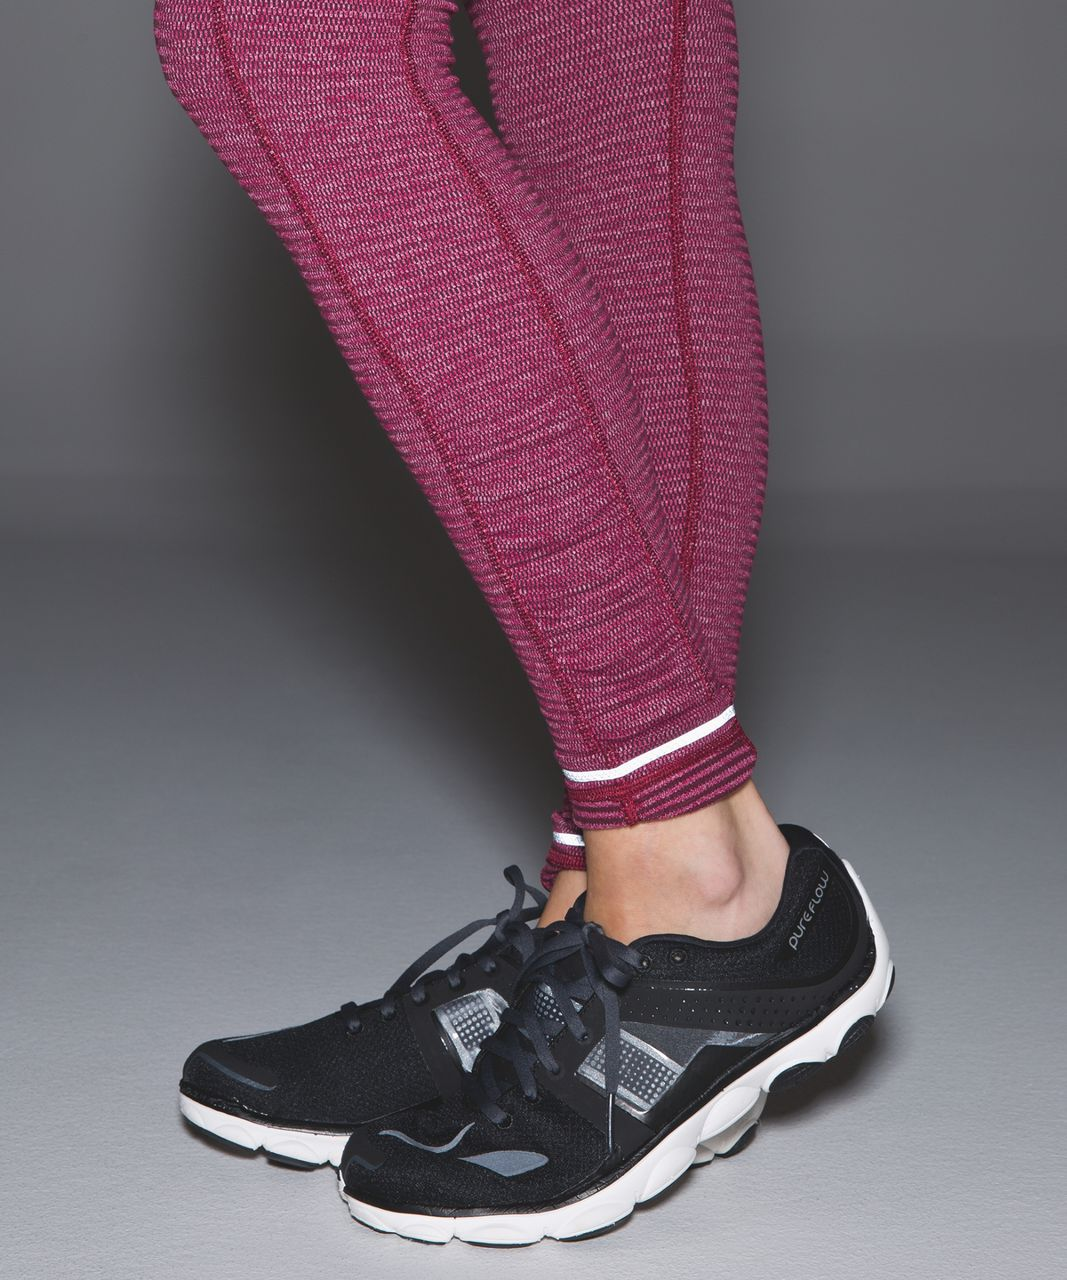 Lululemon Speed Tight IV *Rulu - Mini Check Pique Bordeaux Drama Heathered Berry Rumble